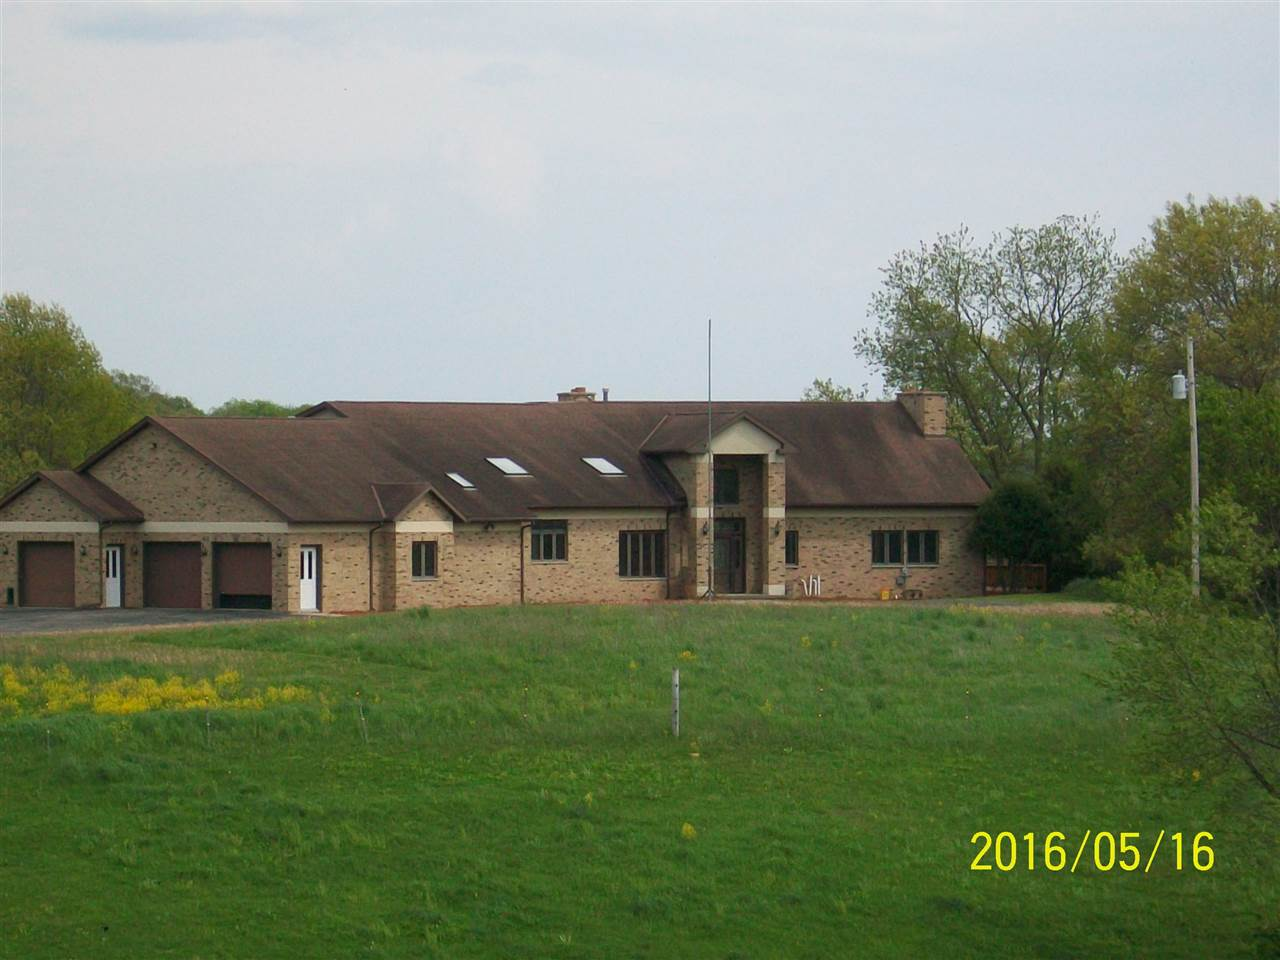 7895 Mckenna Rd, Moscow, WI 53544